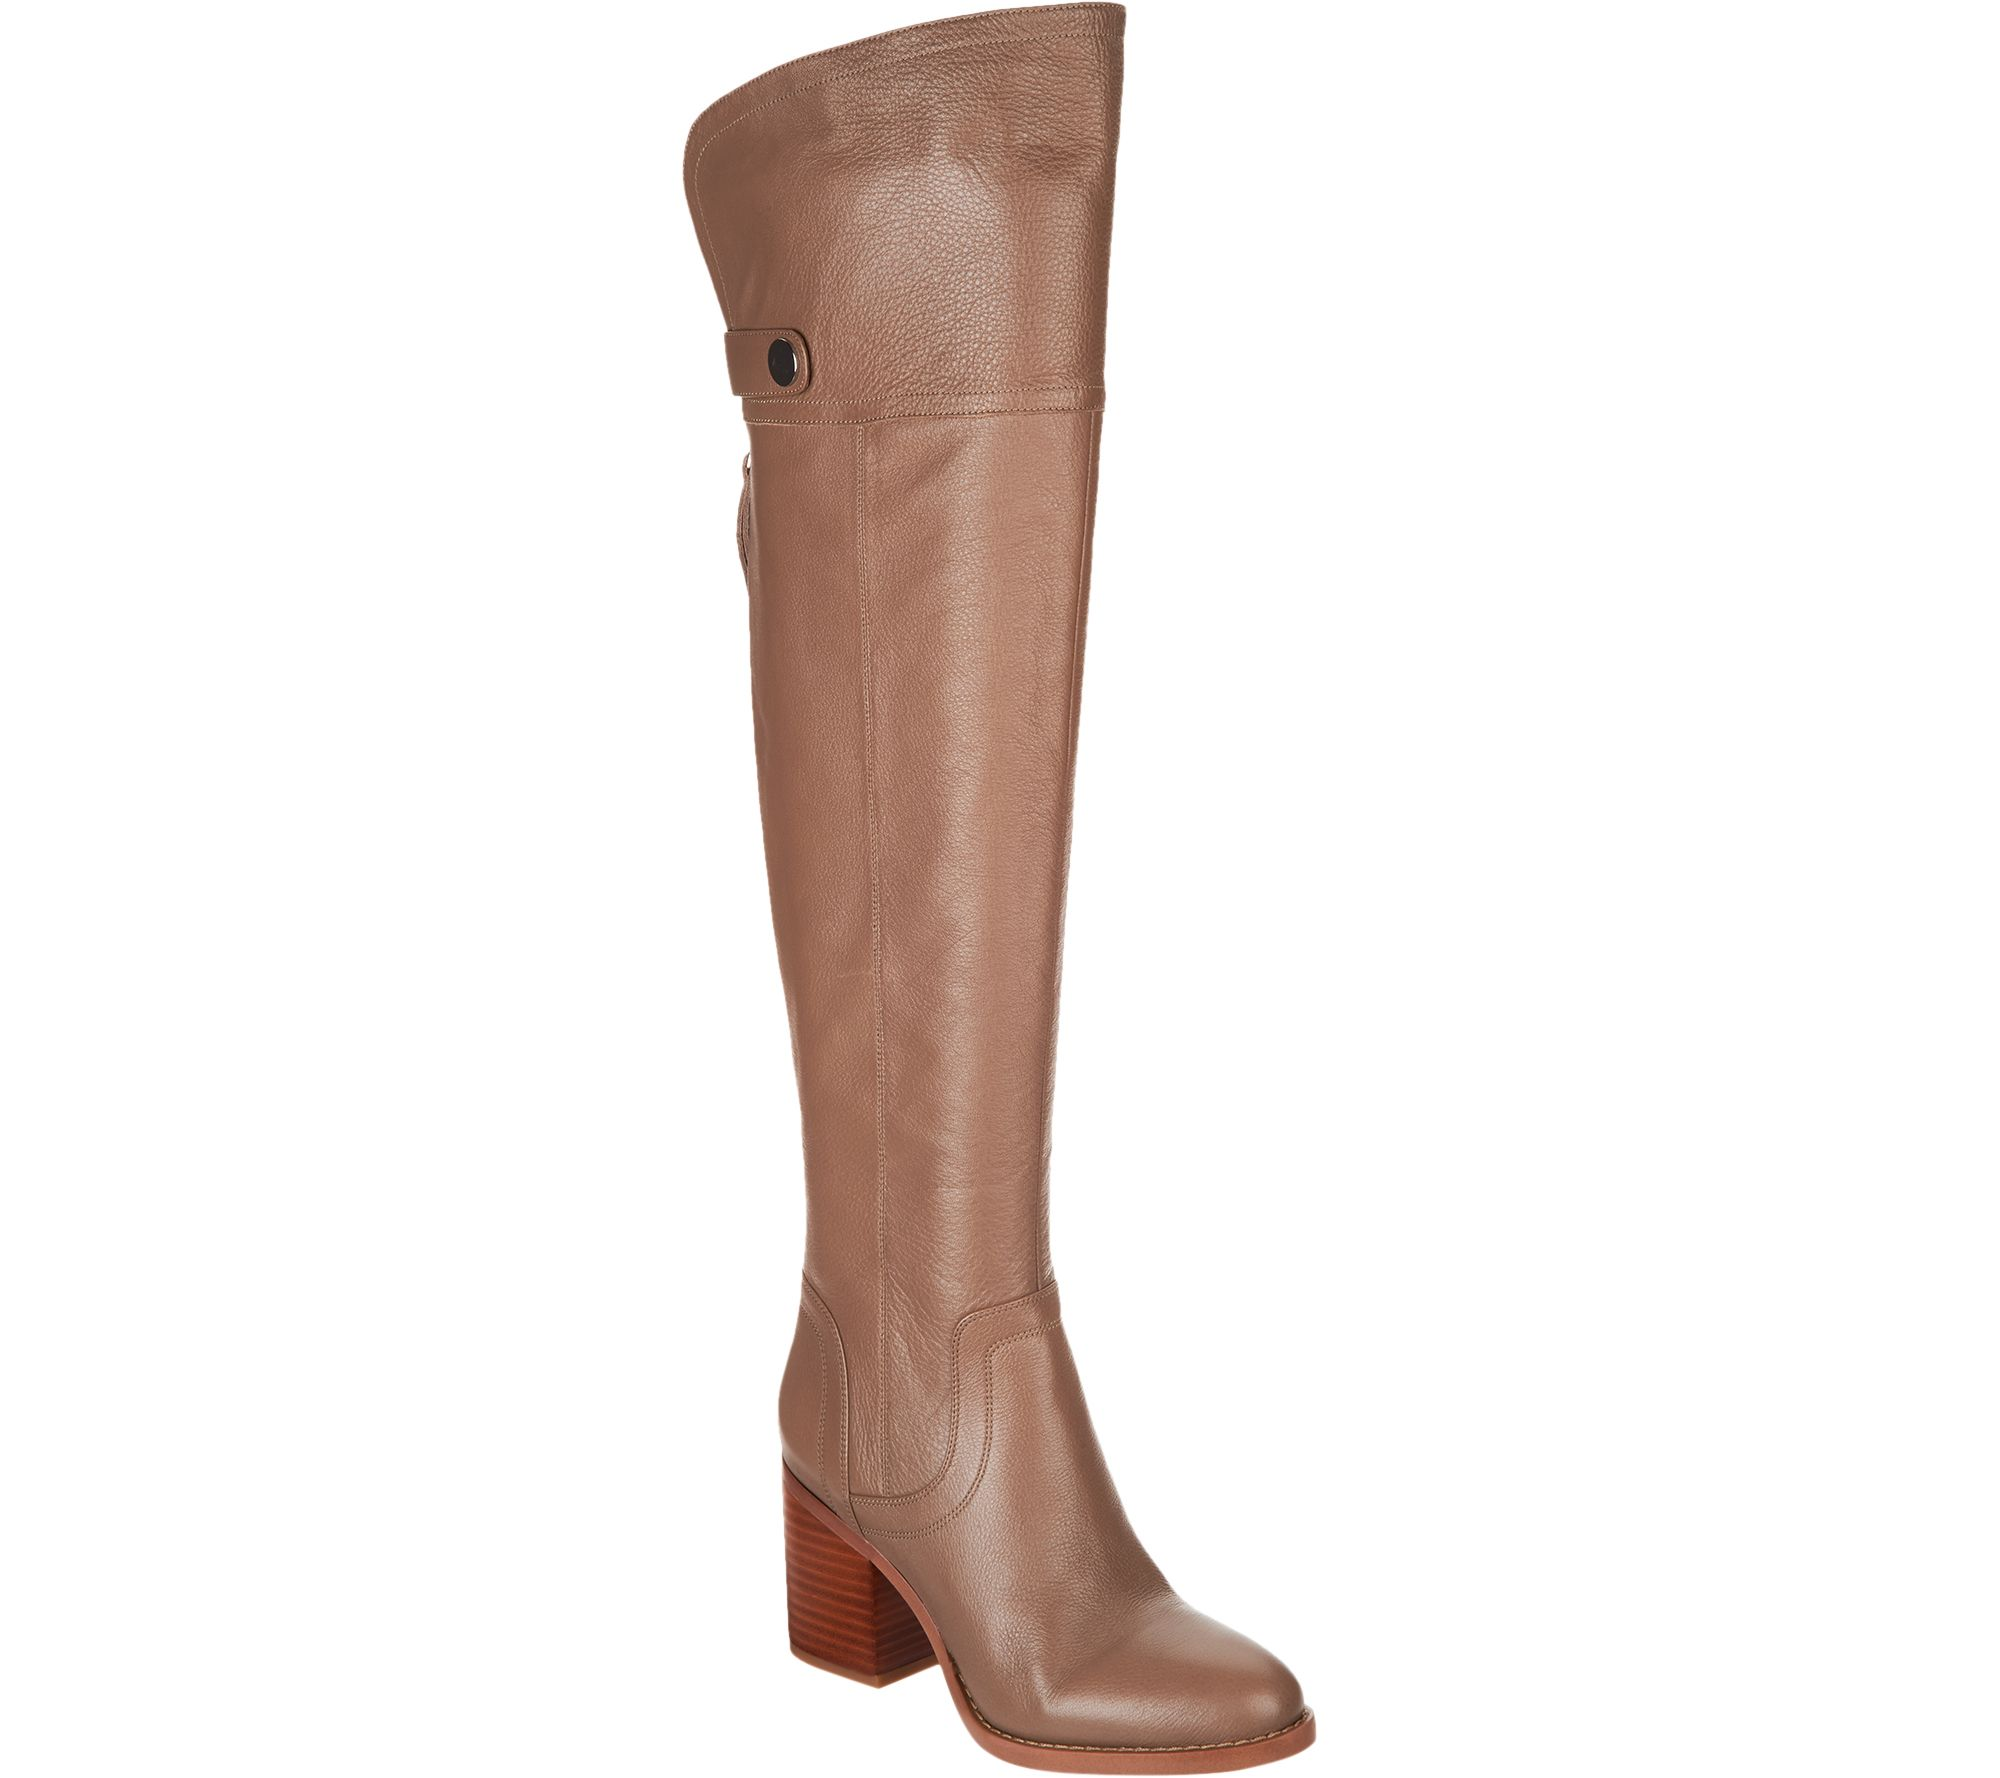 30b3faa299f Franco Sarto Medium Calf Leather Over-the-Knee Boots - Ollie - Page 1 —  QVC.com